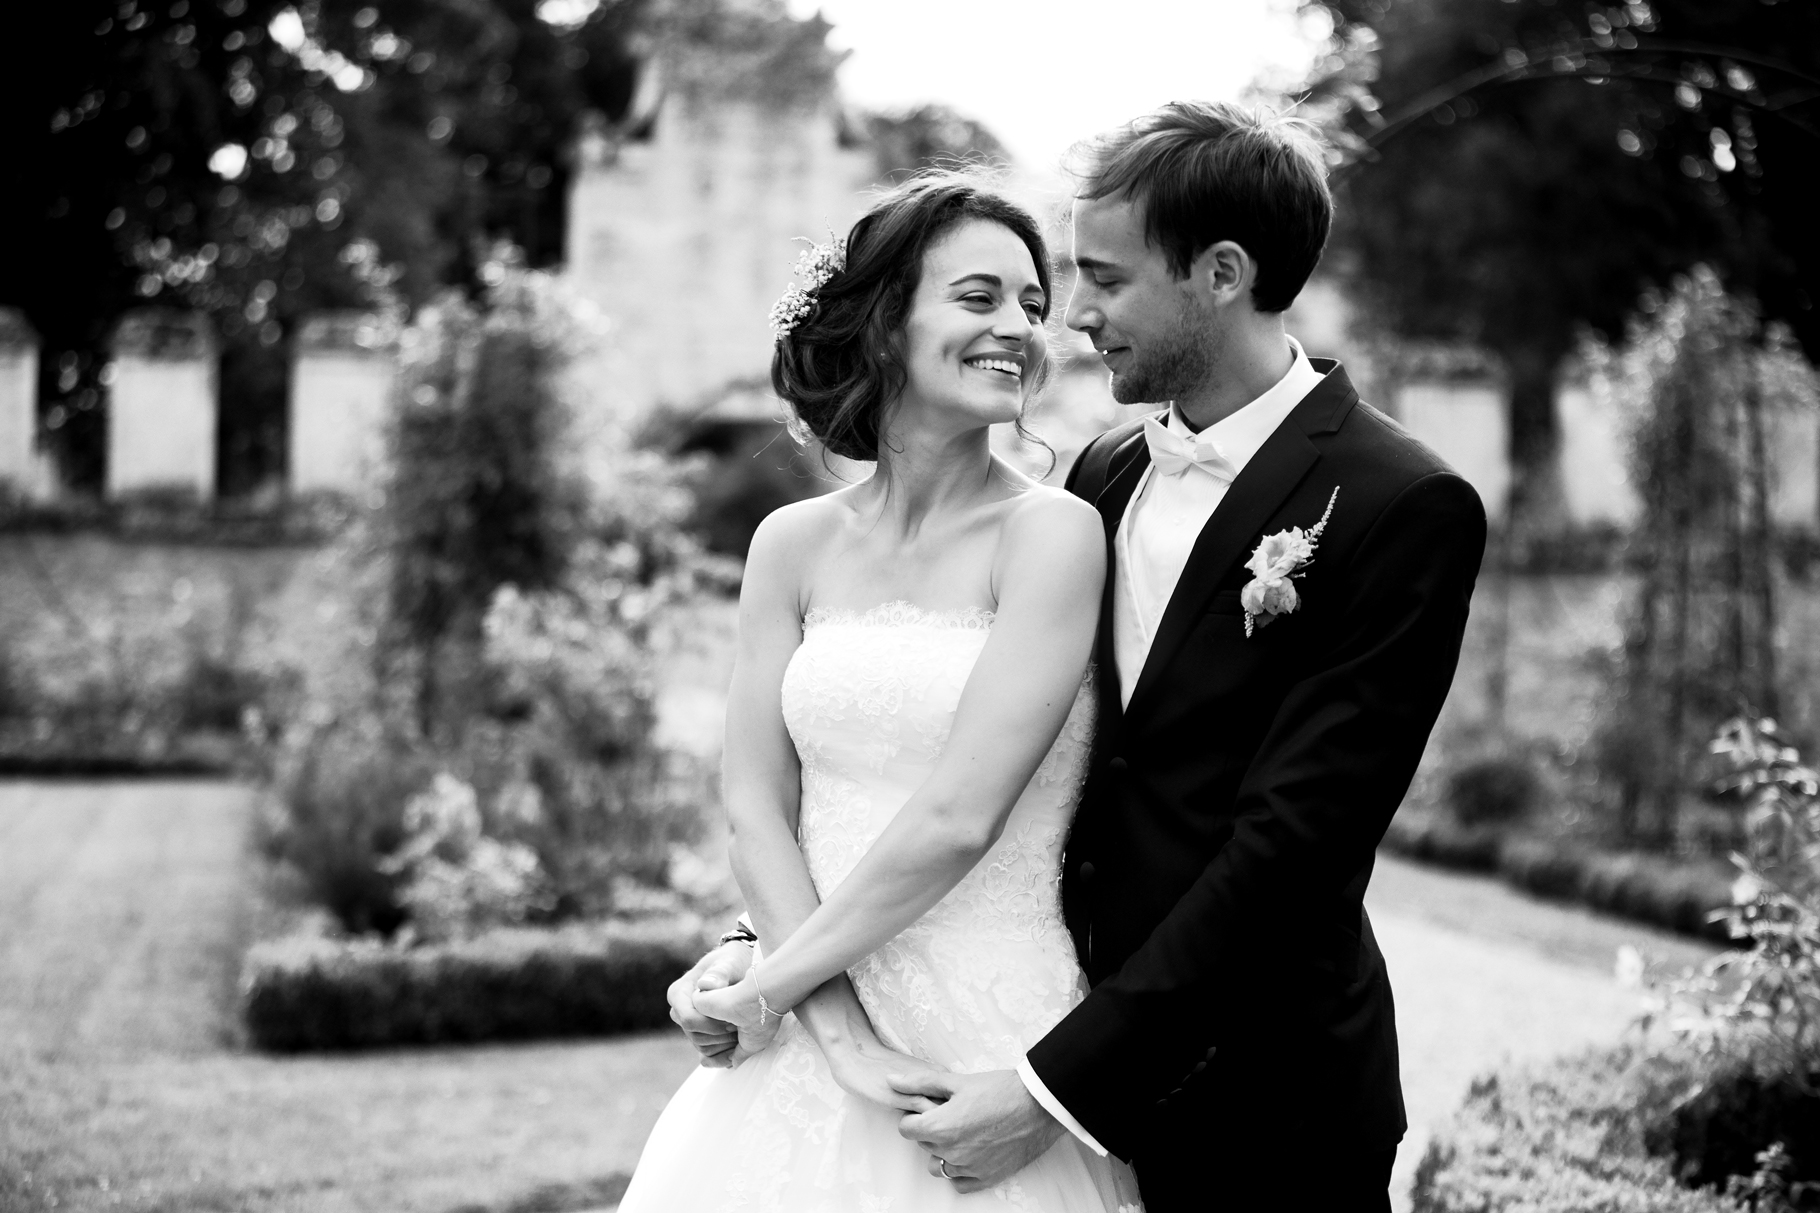 photographe-mariage-paris-oise-abbaye-chaalis-keith-flament